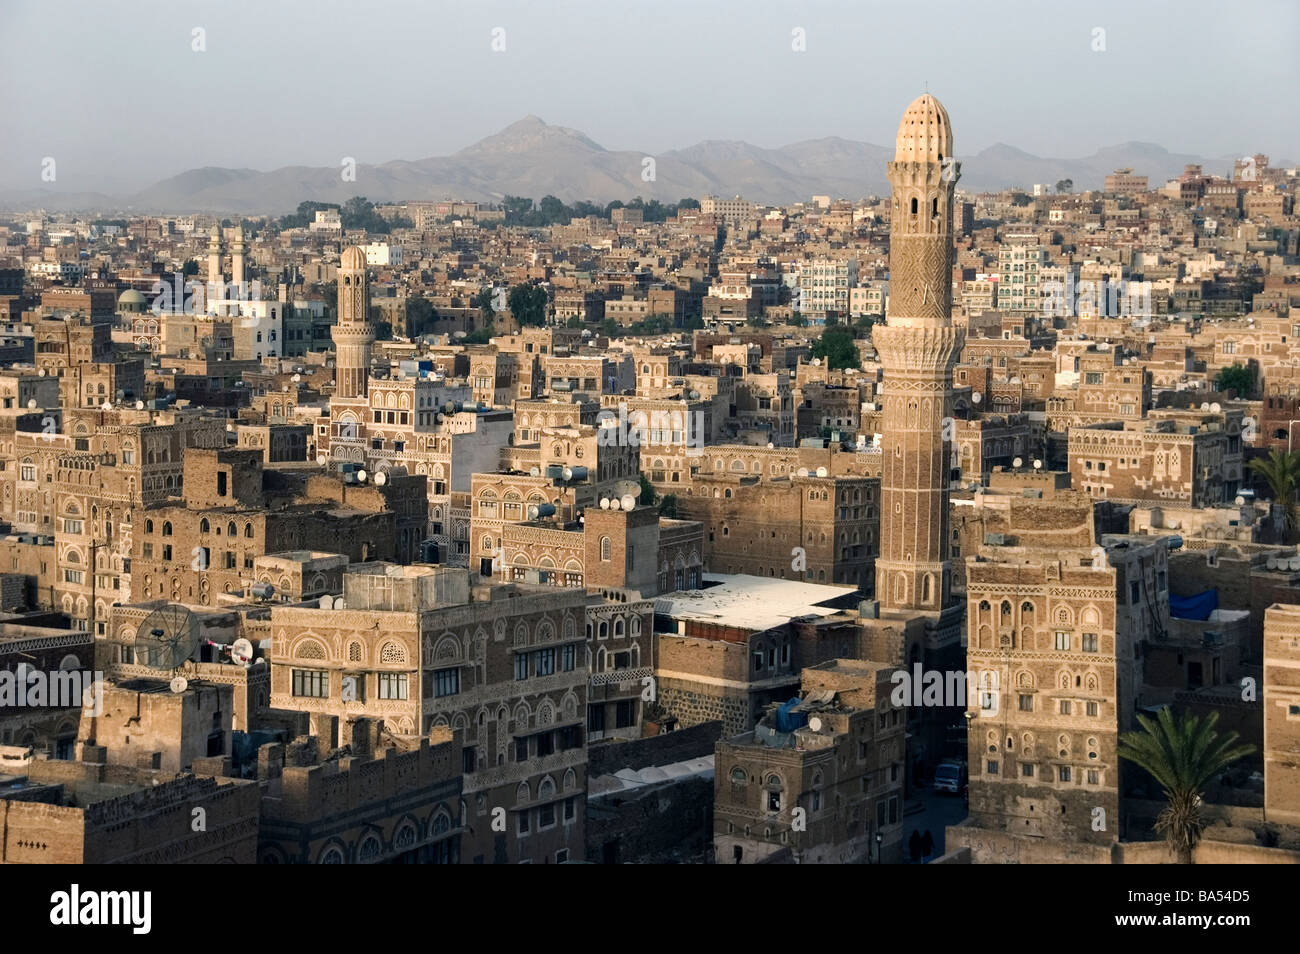 A minaret and traditional tower houses on the skyline of the old city of Sana'a, Yemen. Stock Photo